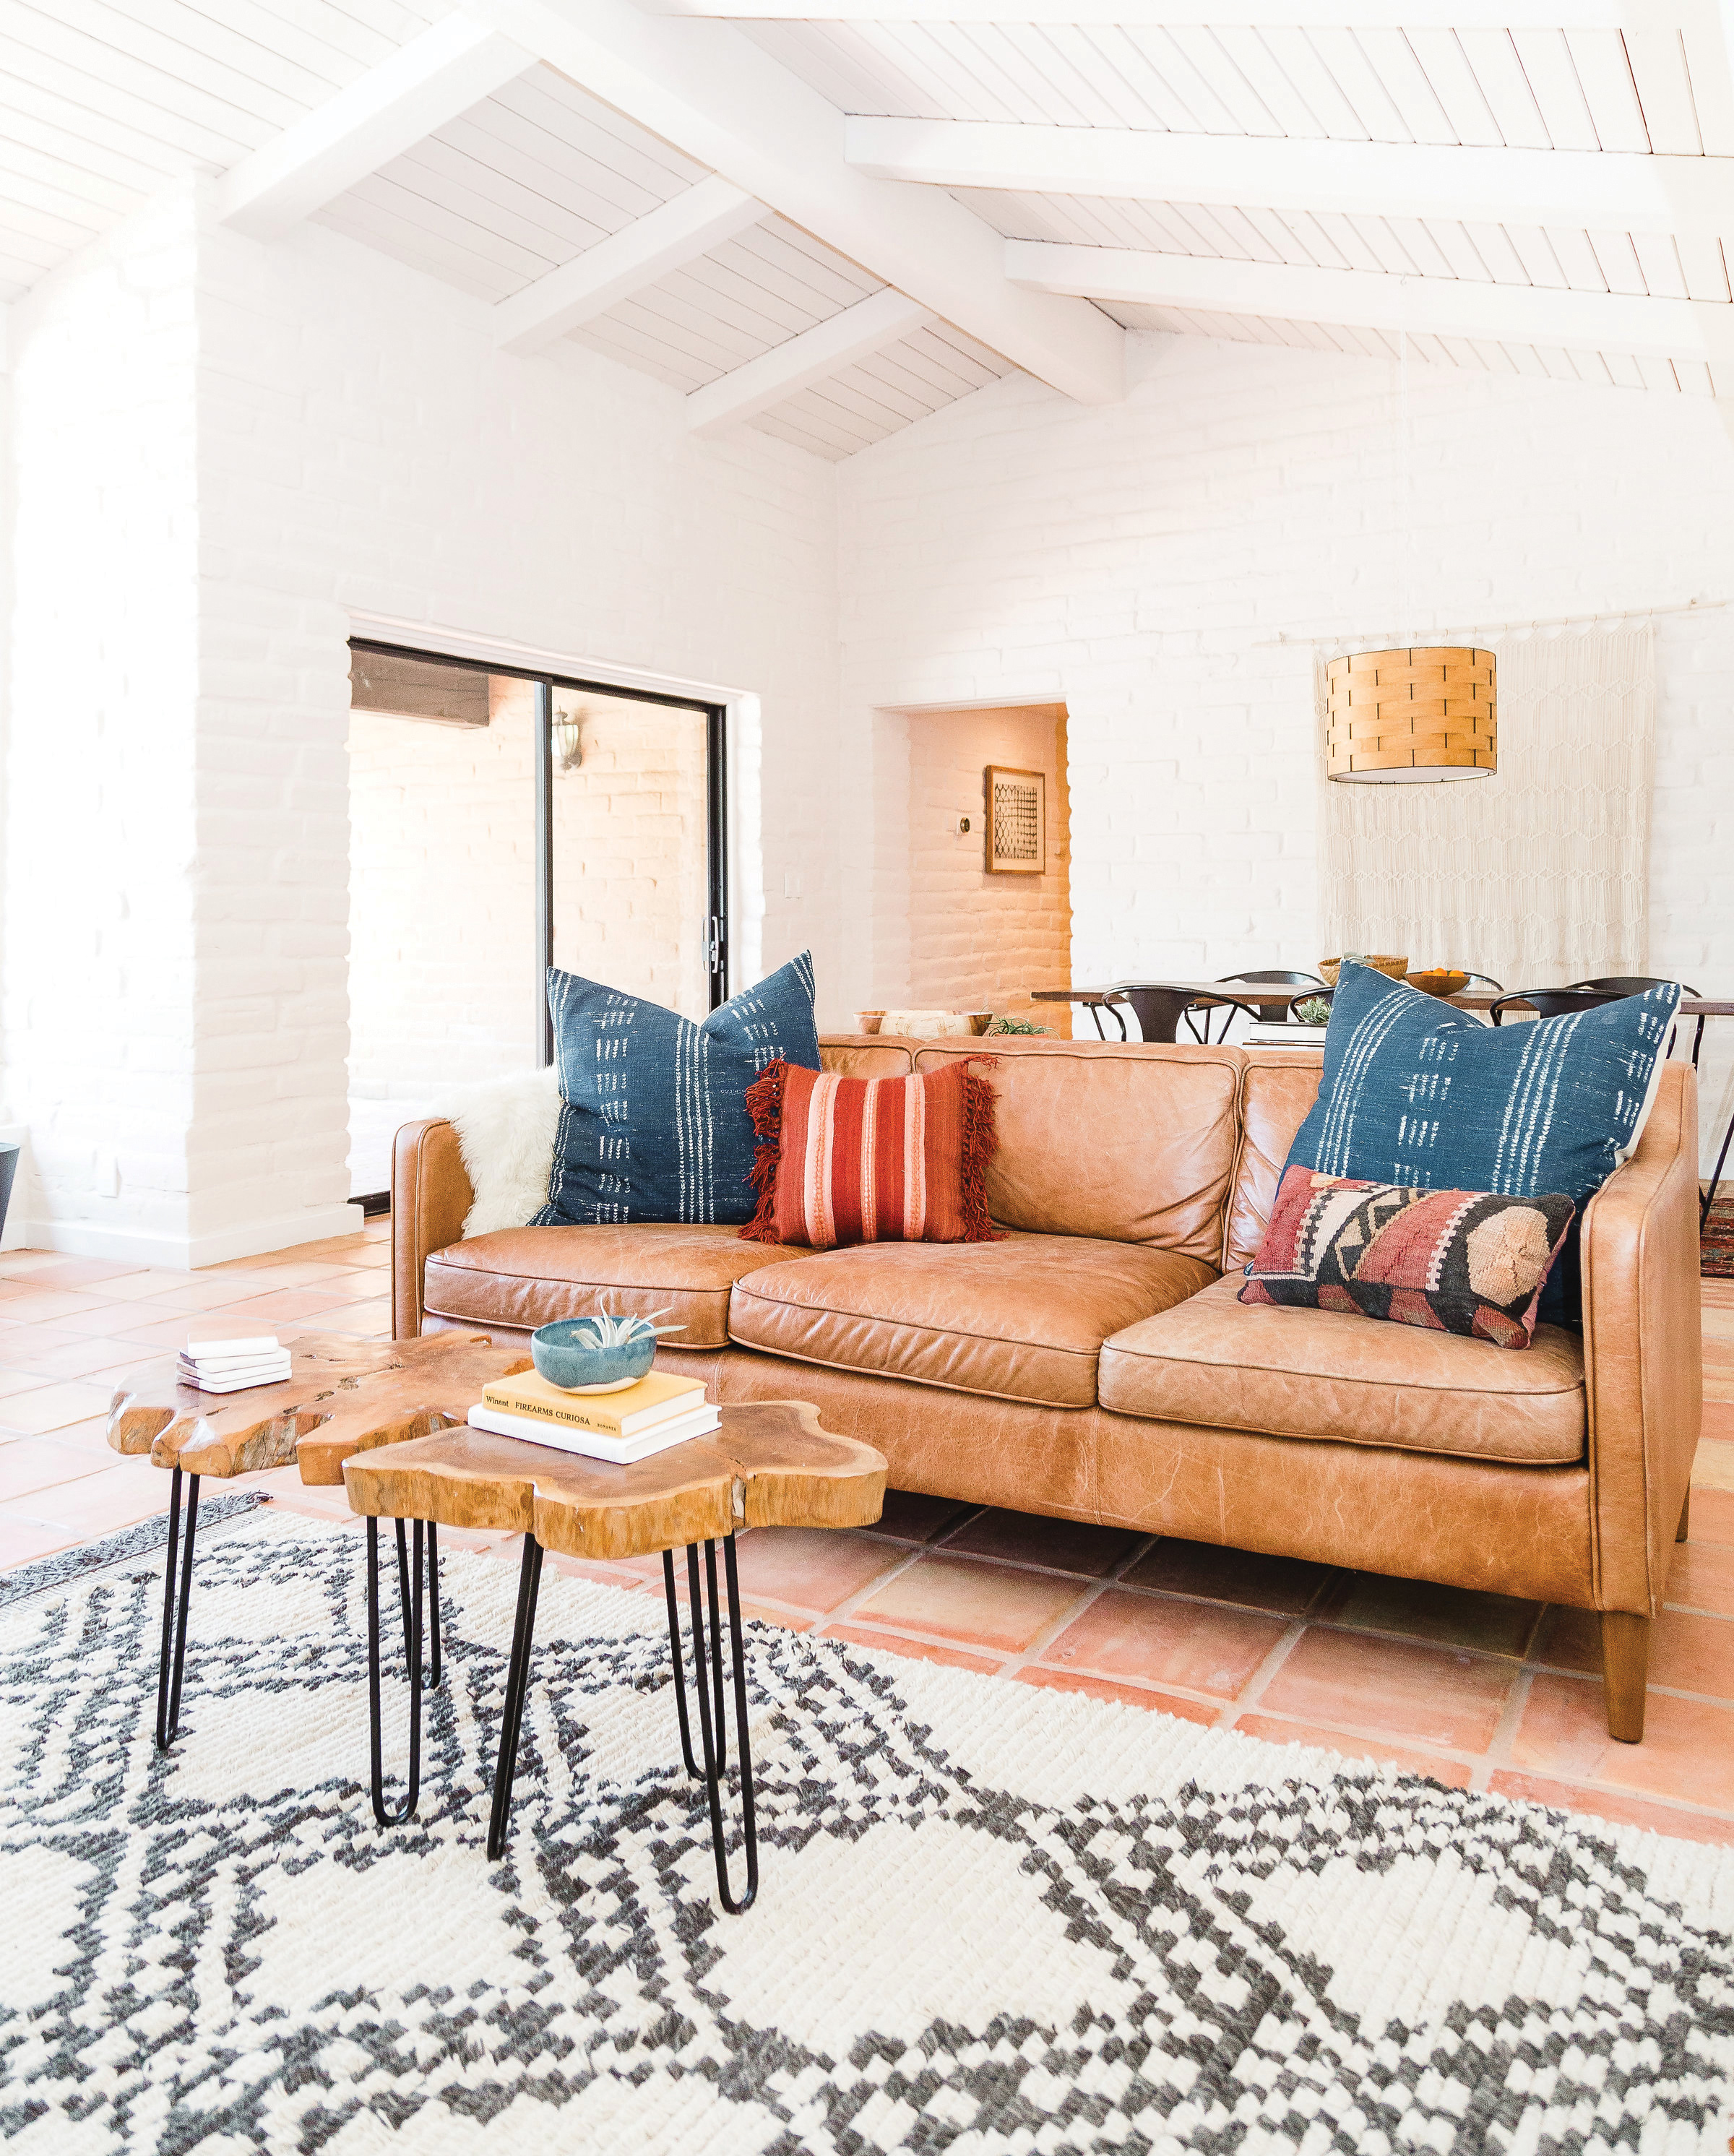 southwestern style desert style brown leather couch white walls black and white